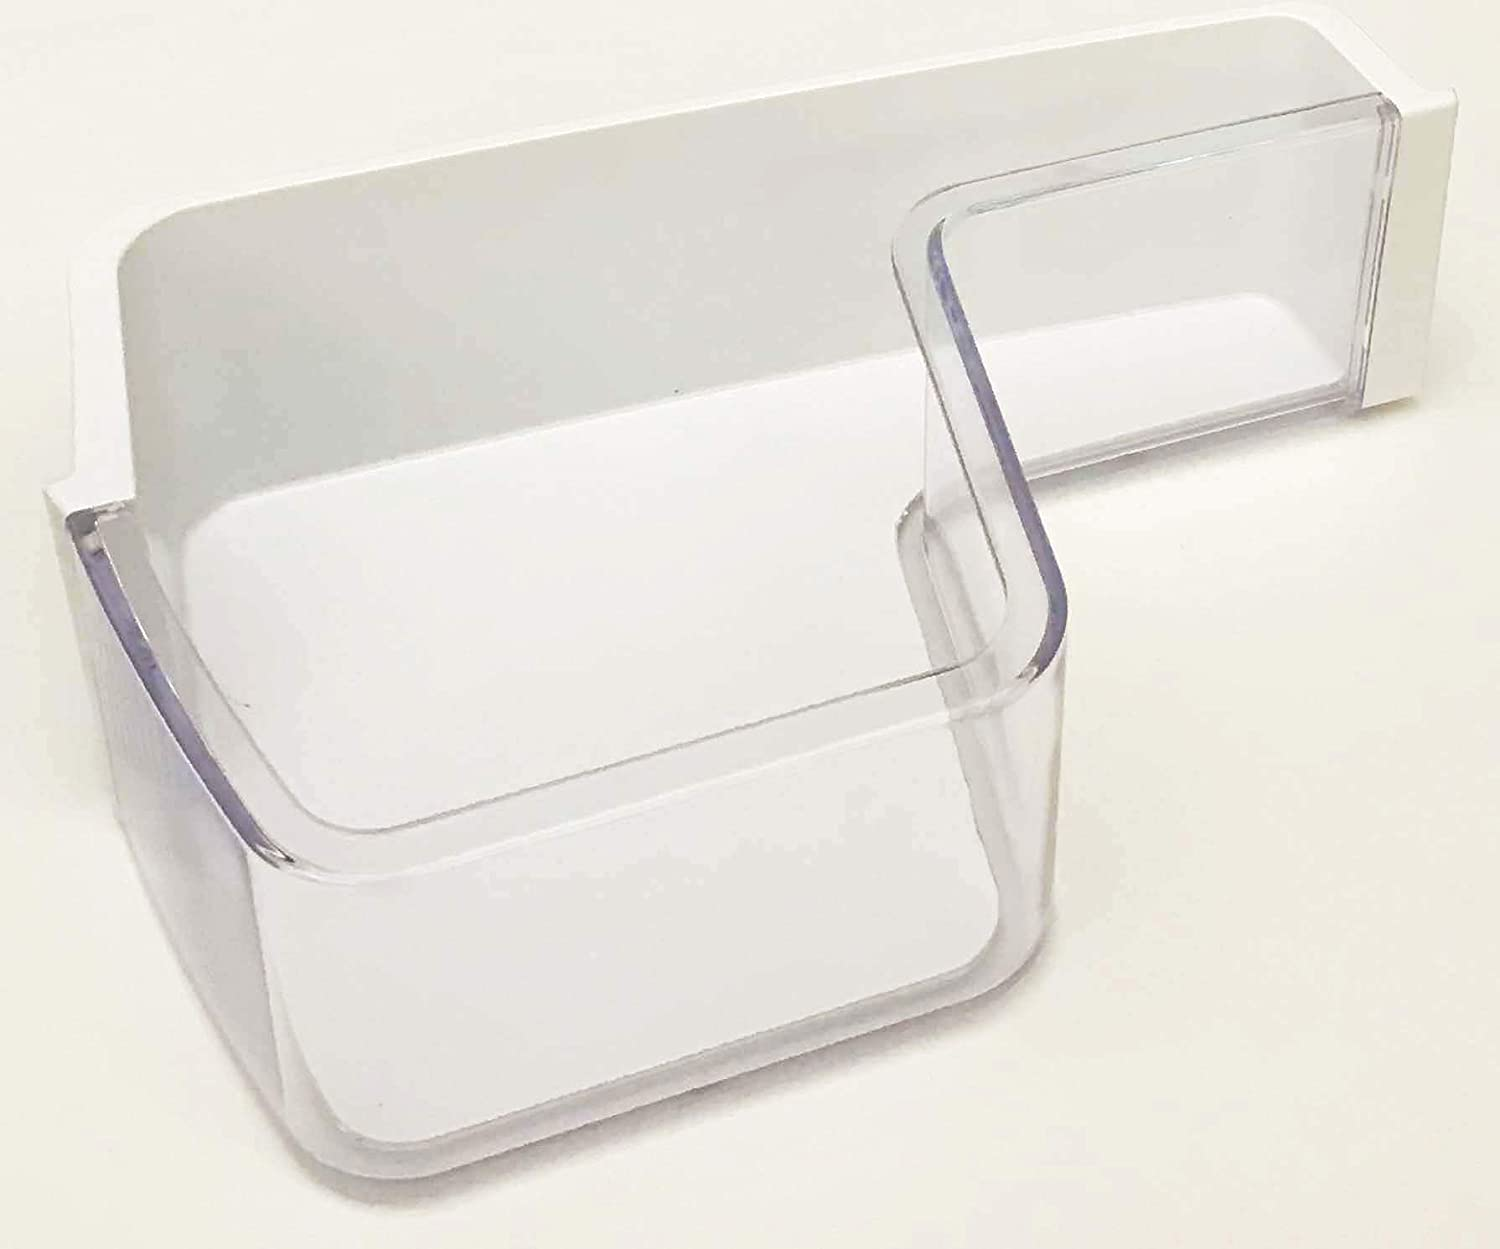 OEM Samsung Refrigerator Door Bin Basket Shelf Tray Specifically For RF263BEAESR, RF263BEAESR/AA, RF263BEAESR/AA (0000)